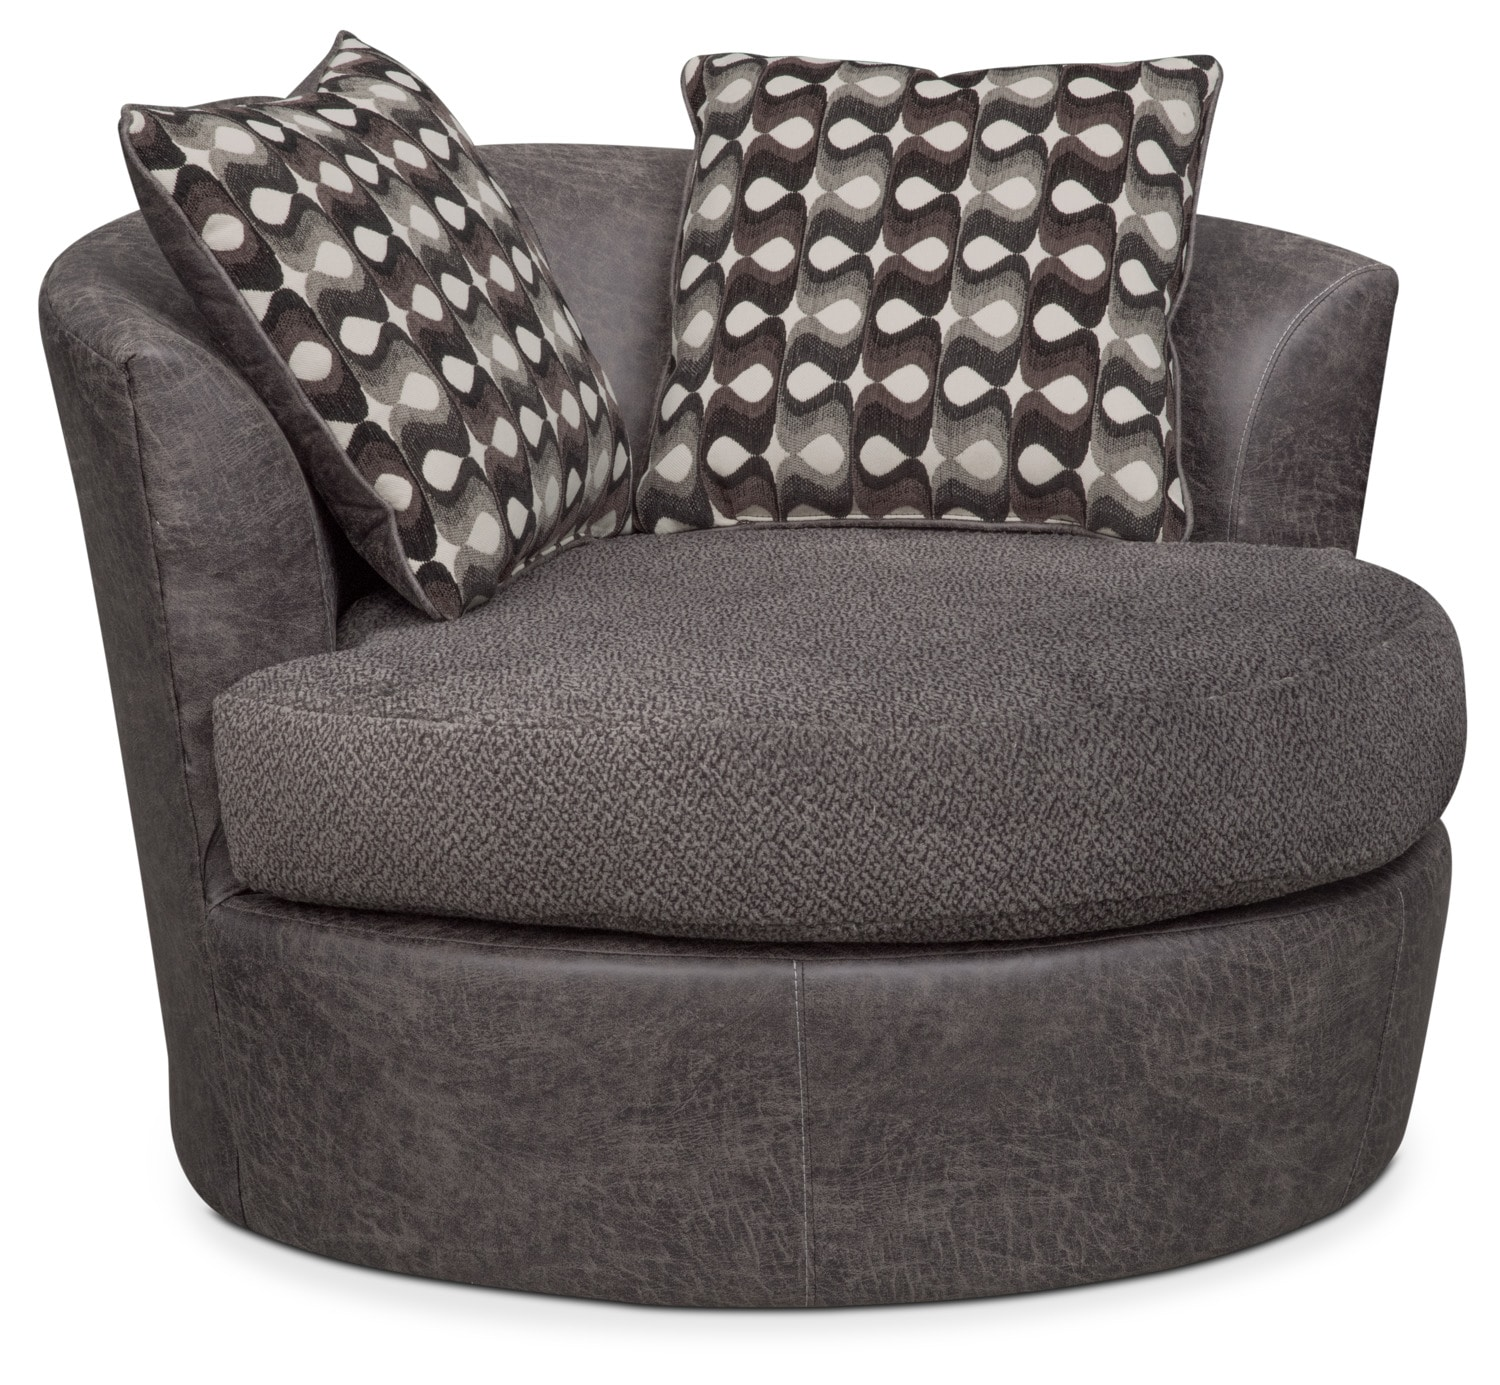 Living Room Furniture - Brando Swivel Chair - Smoke